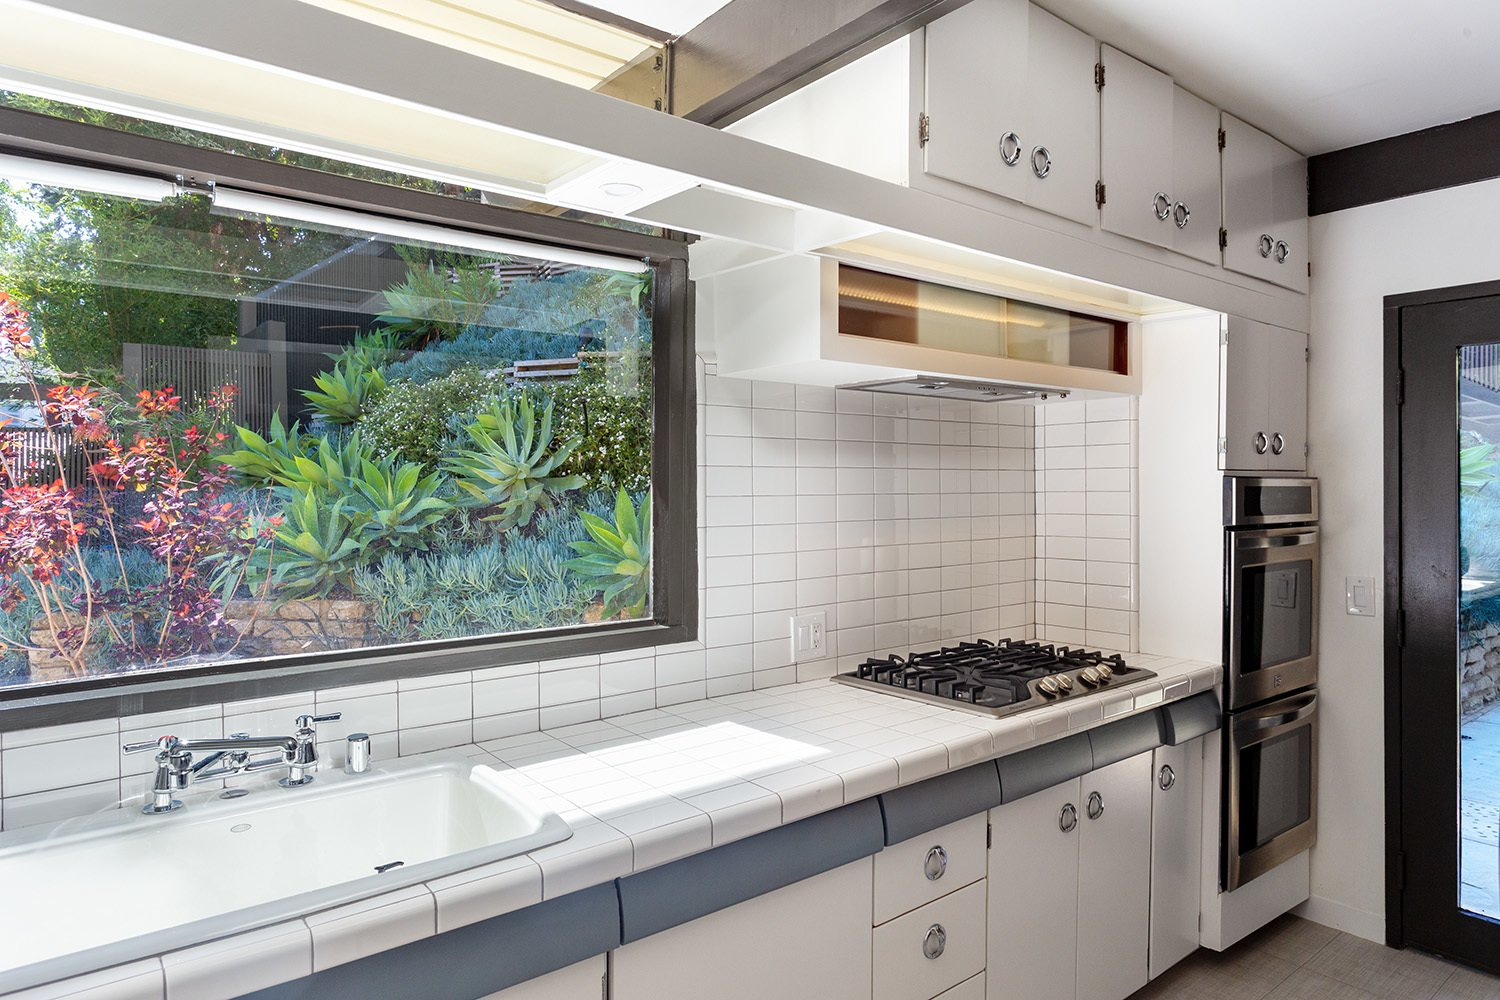 The kitchen features original cabinetry with a large window above the sink providing natural light. The space was updated with new appliances and fixtures.  Photo 9 of 17 in A Dapper Midcentury Under the Hollywood Sign Lists for $1.65M